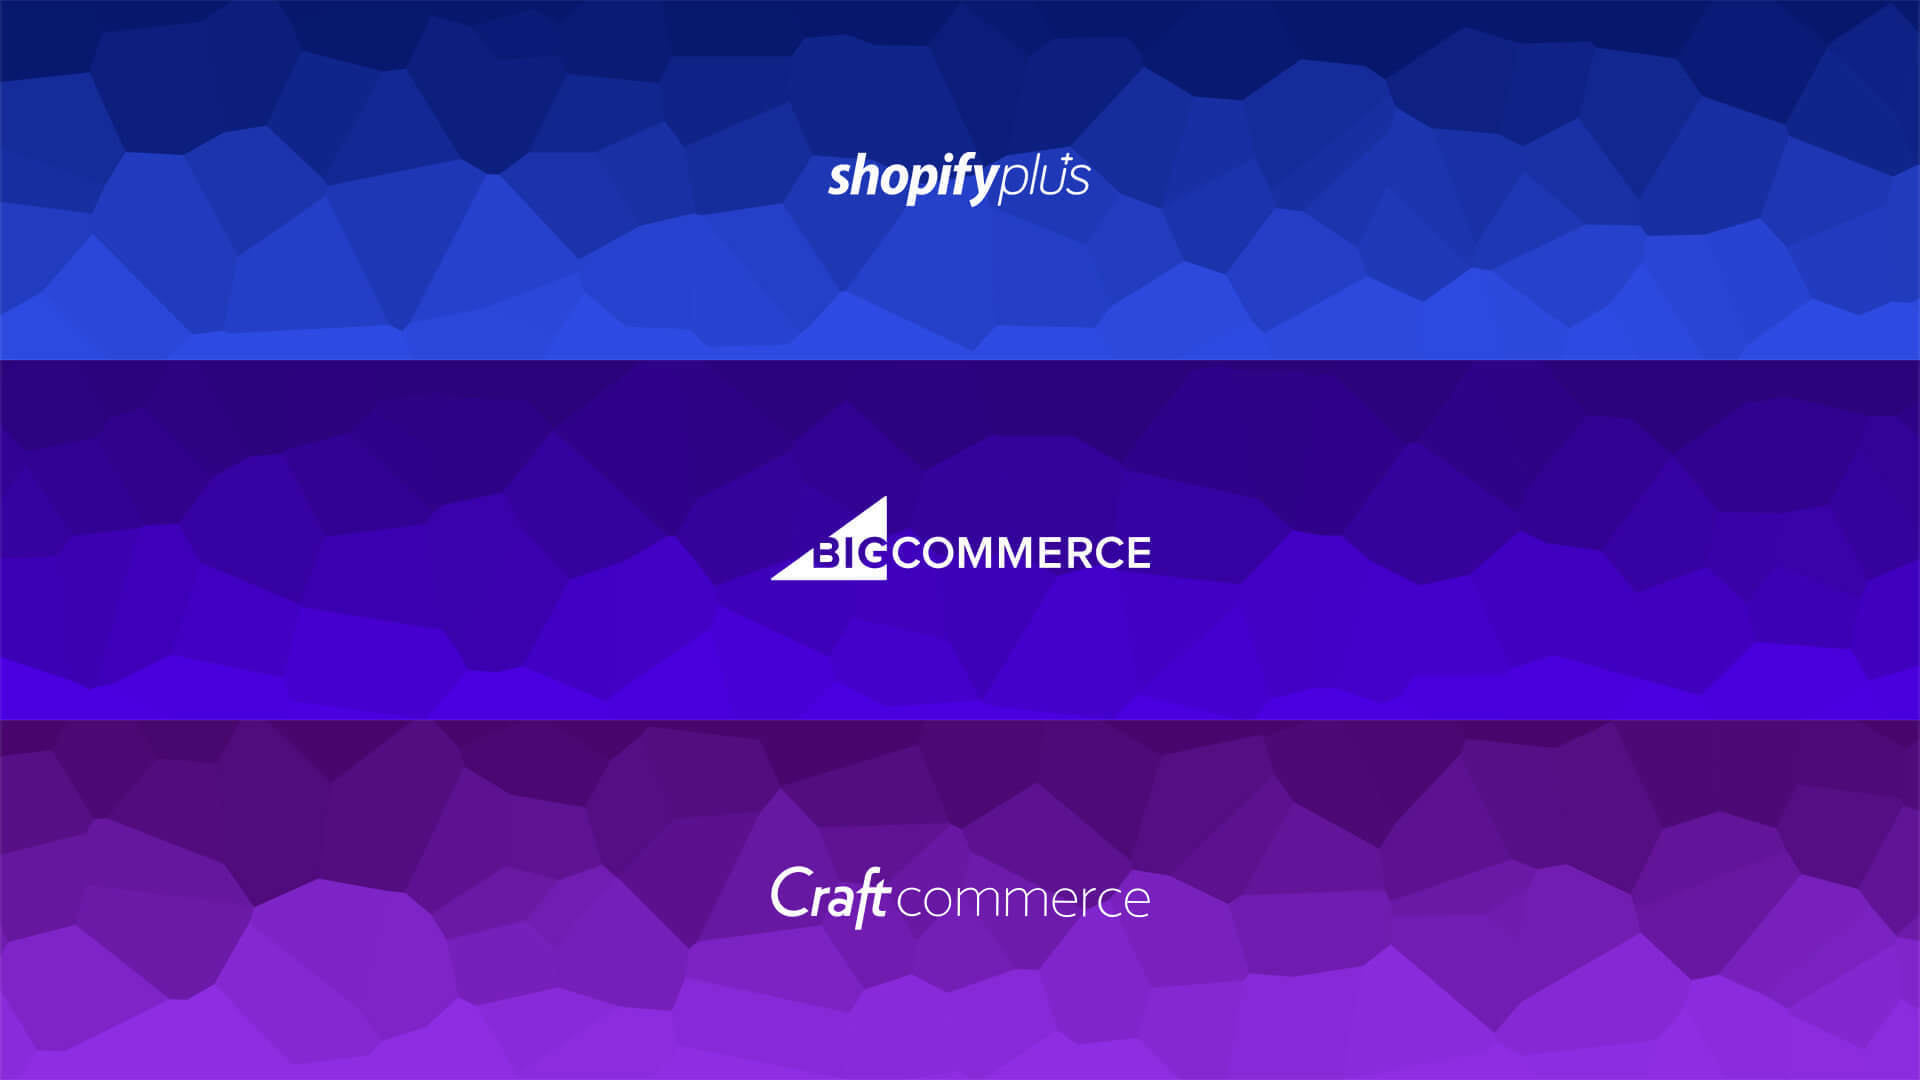 Shopify vs big commmerce vs craft commerce